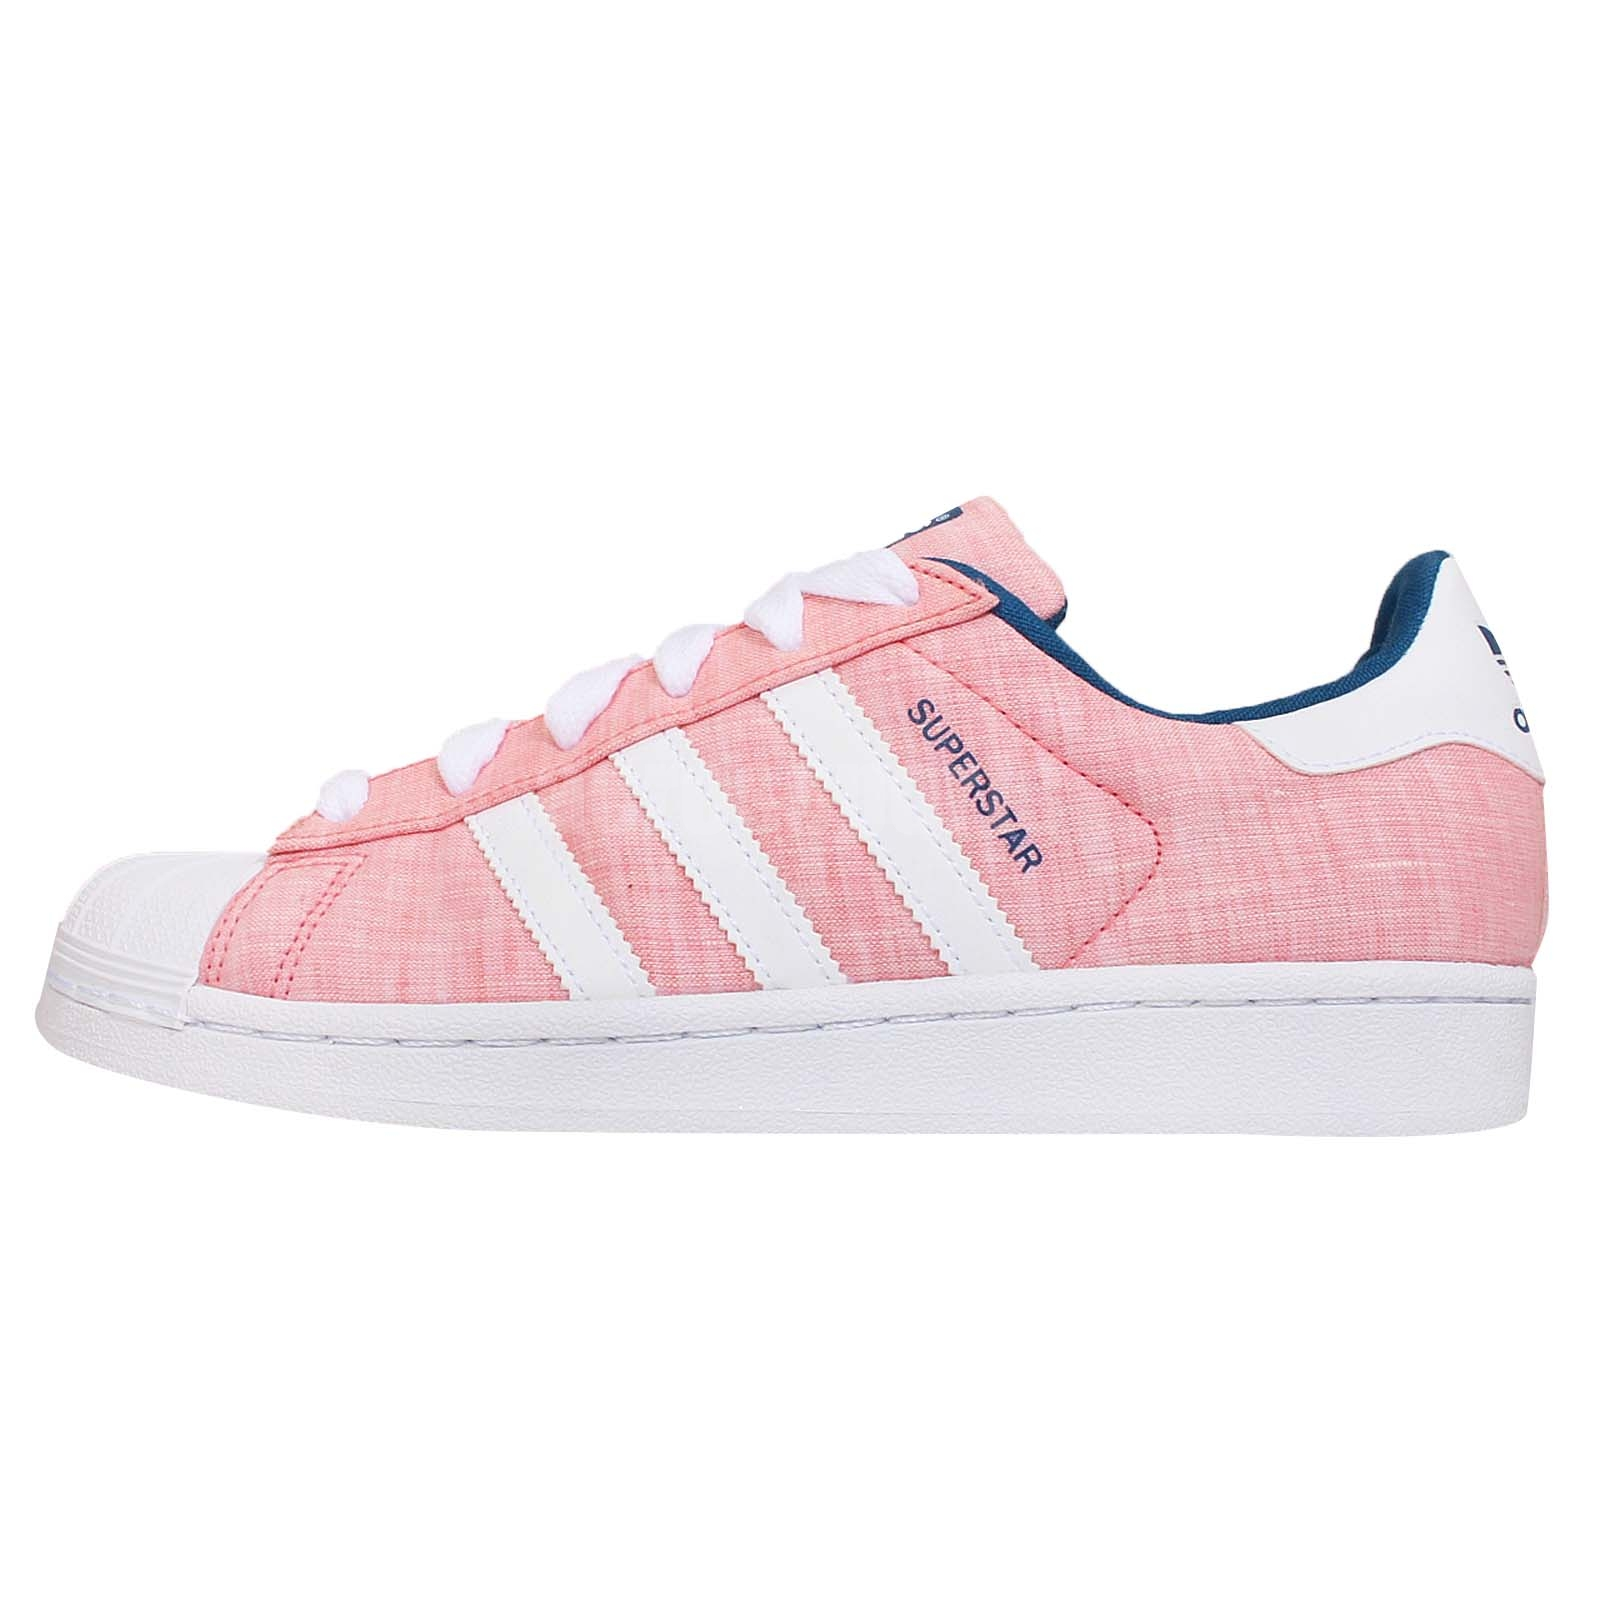 Adidas Originals Superstar W Pink Blue Womens Classic ...